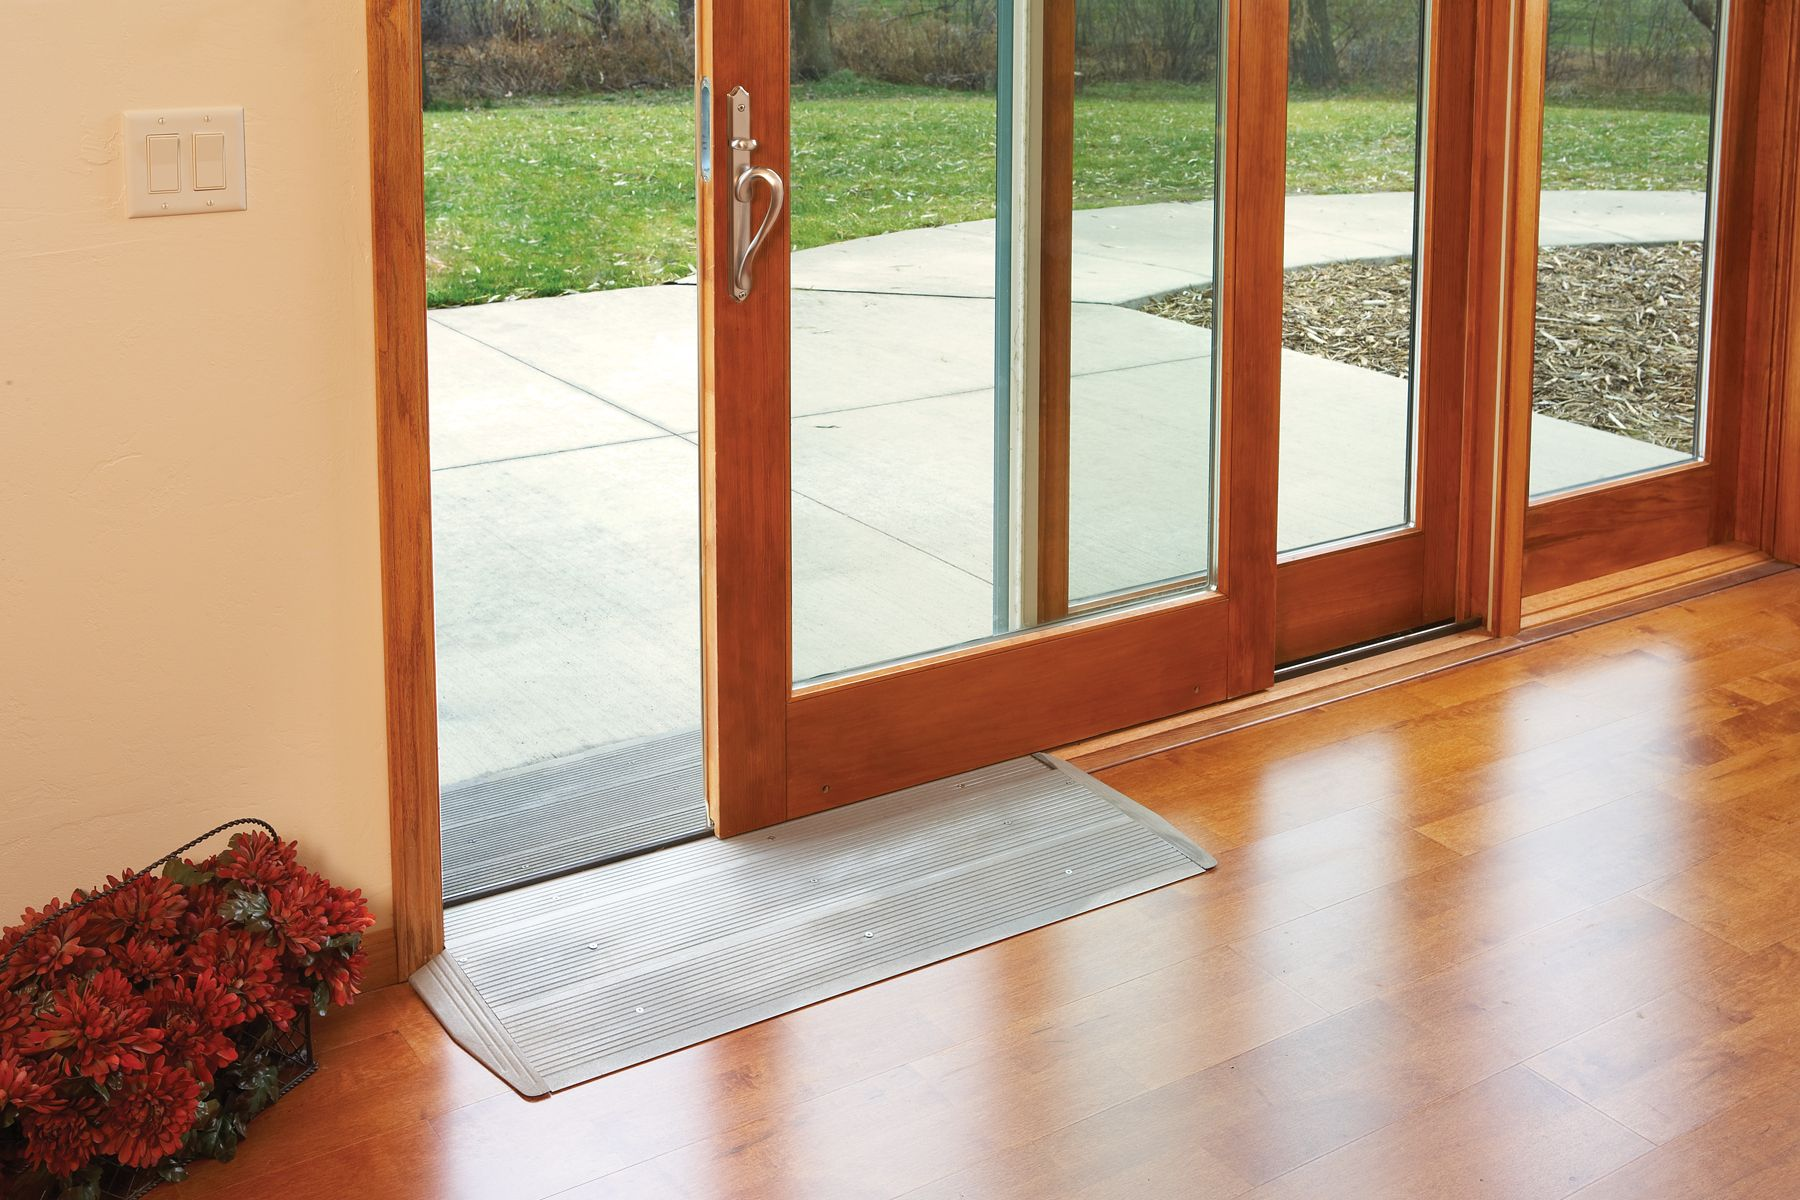 Easy Access Low Threshold Exterior Sliding Must Be 75 H Or